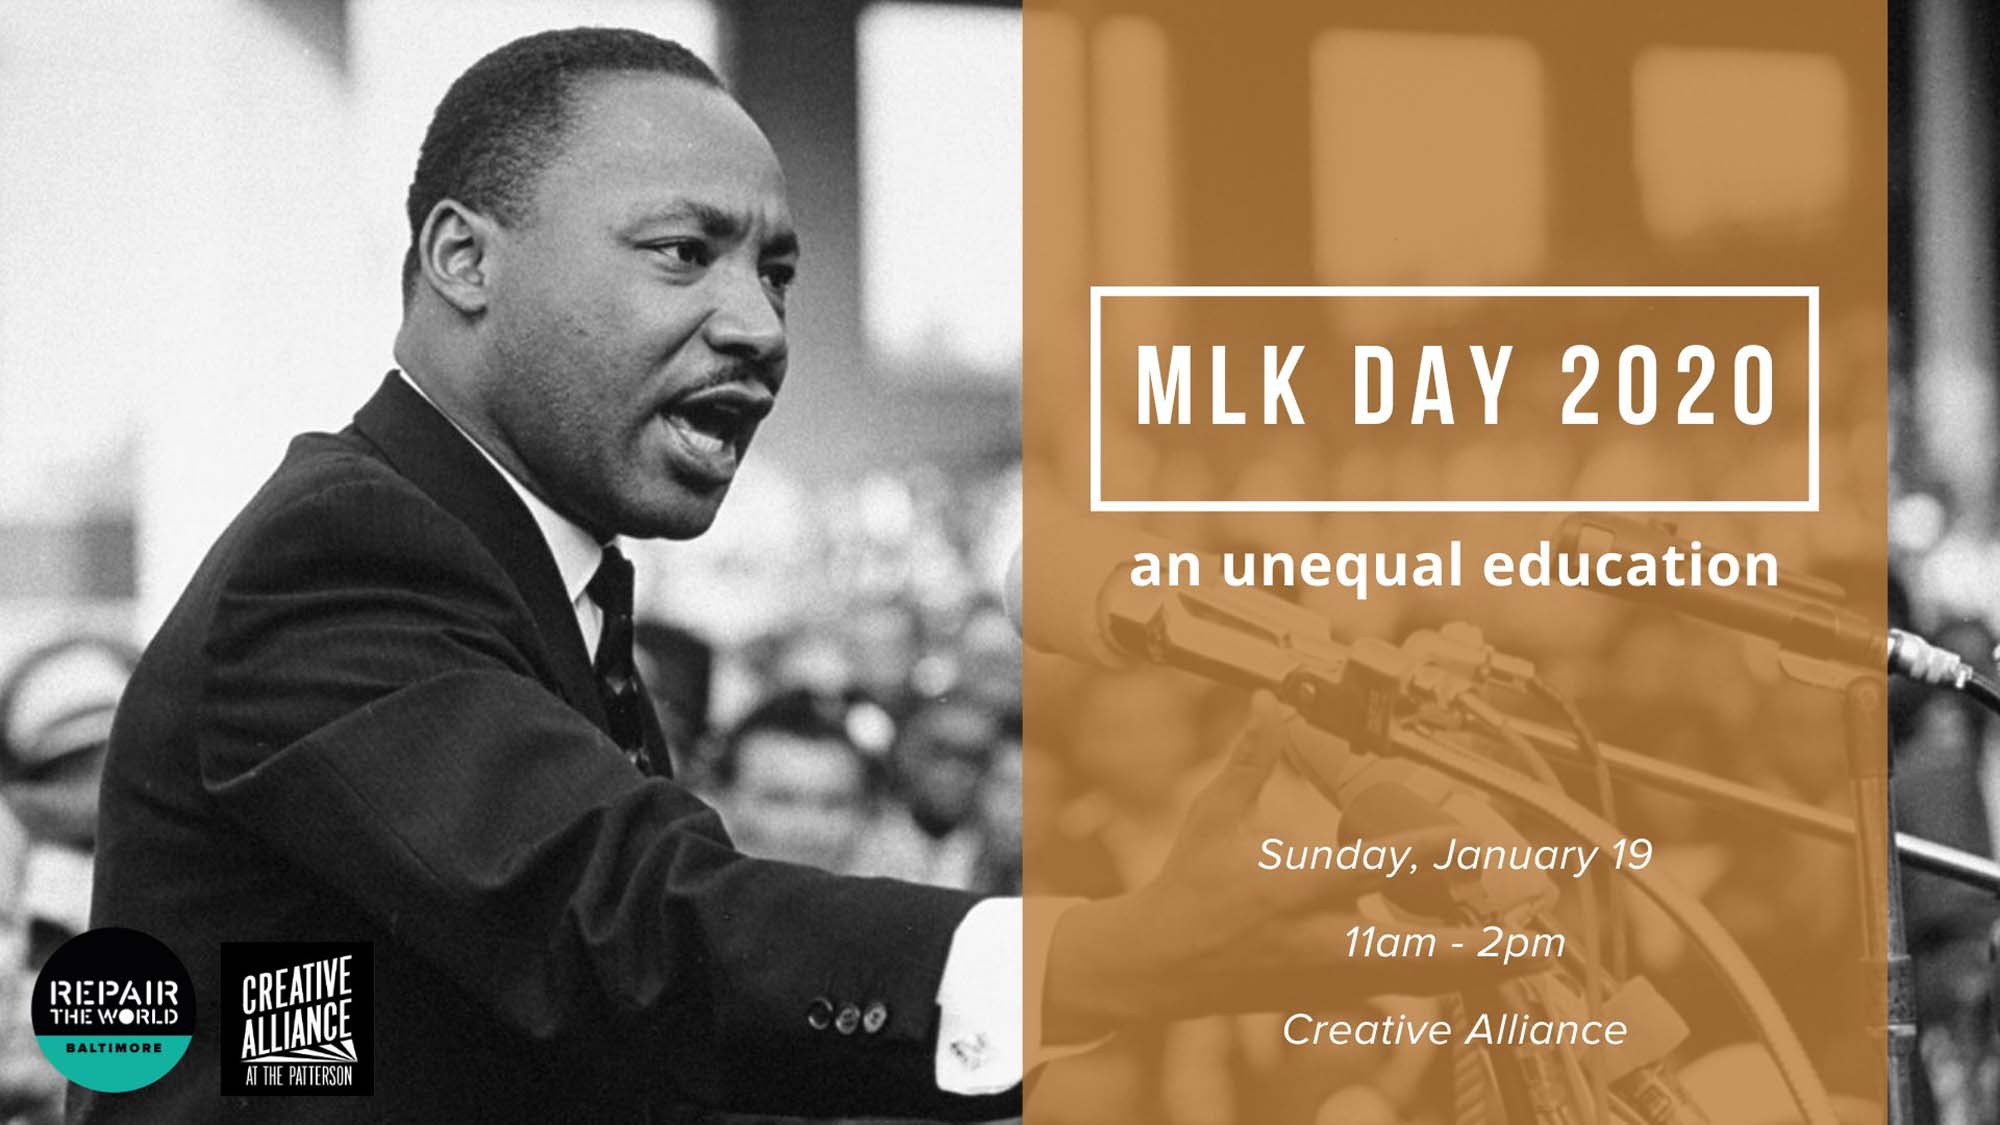 Mlk Day 2020 An Unequal Education Creative Alliance